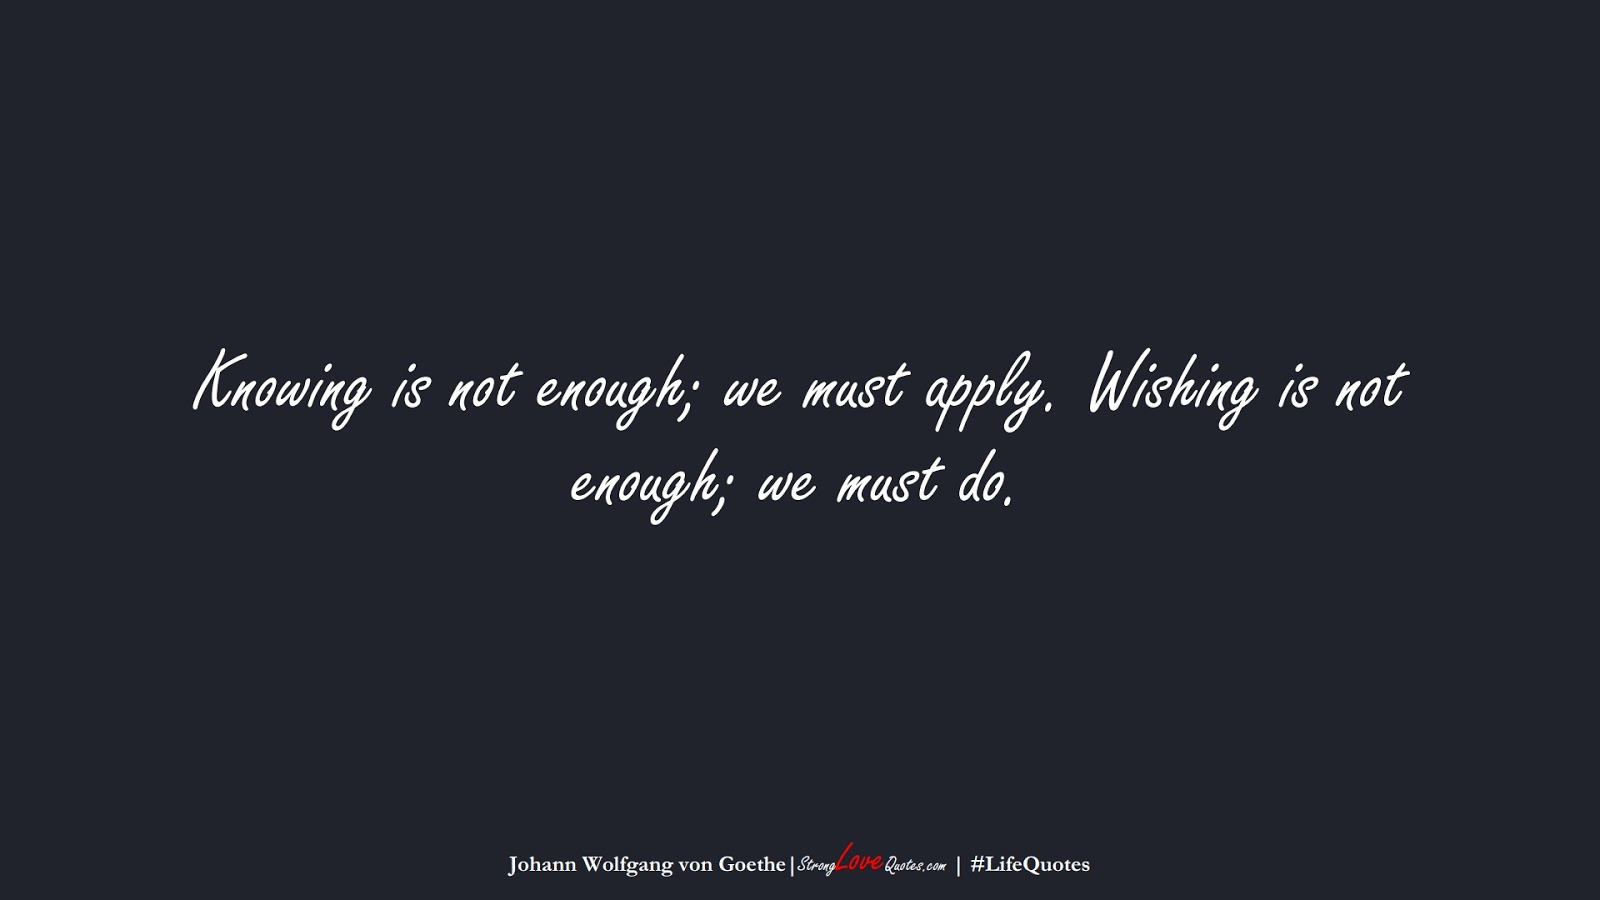 Knowing is not enough; we must apply. Wishing is not enough; we must do. (Johann Wolfgang von Goethe);  #LifeQuotes